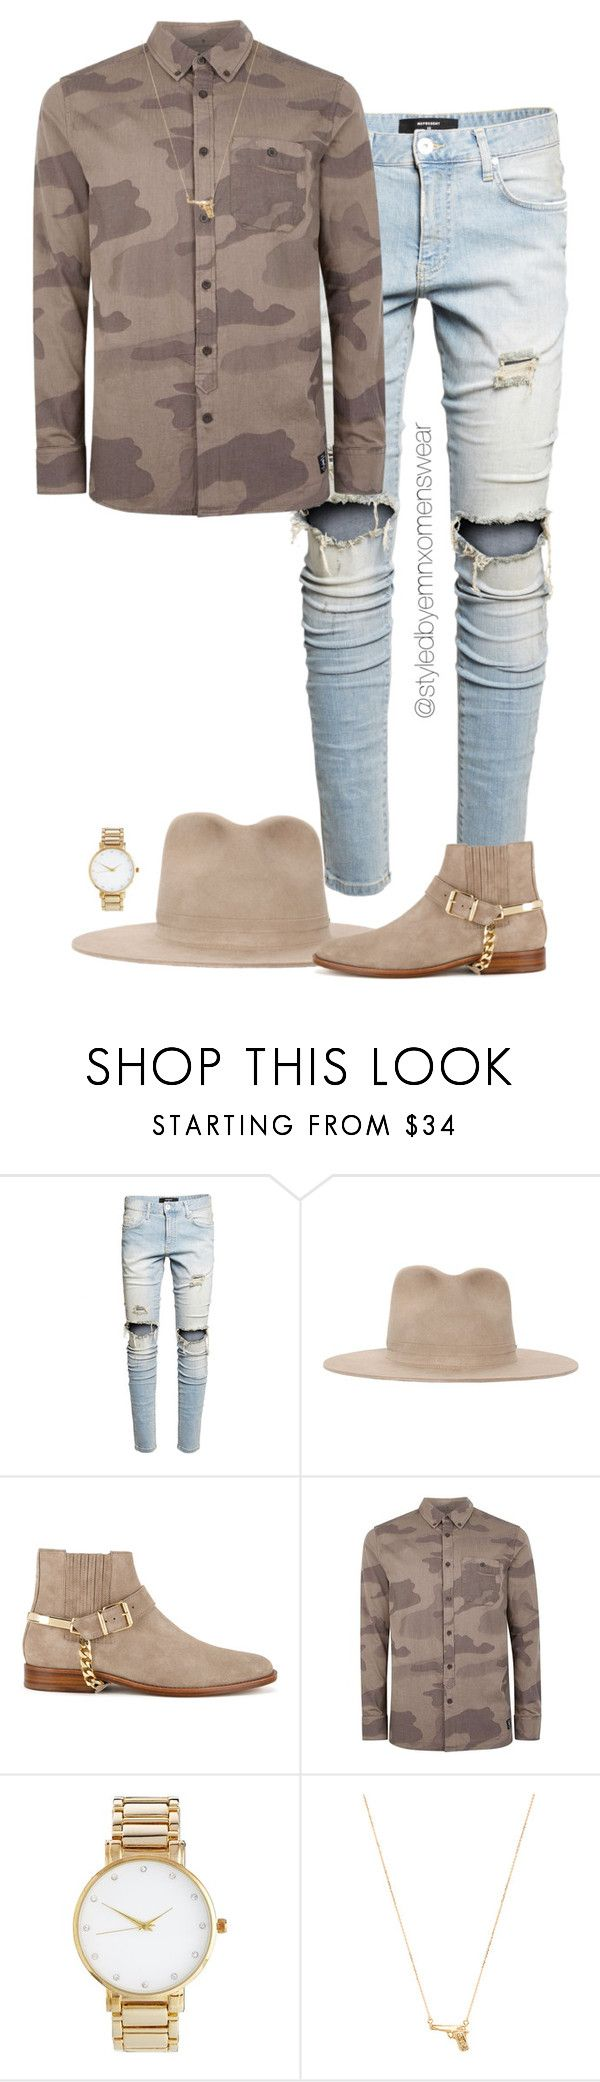 """Untitled #1529"" by efiaeemnxo ❤ liked on Polyvore featuring Super Duper, Balmain, Topman, ASOS, Joolz by Martha Calvo, men's fashion, menswear, mens, MensFashion and sbemnxo"